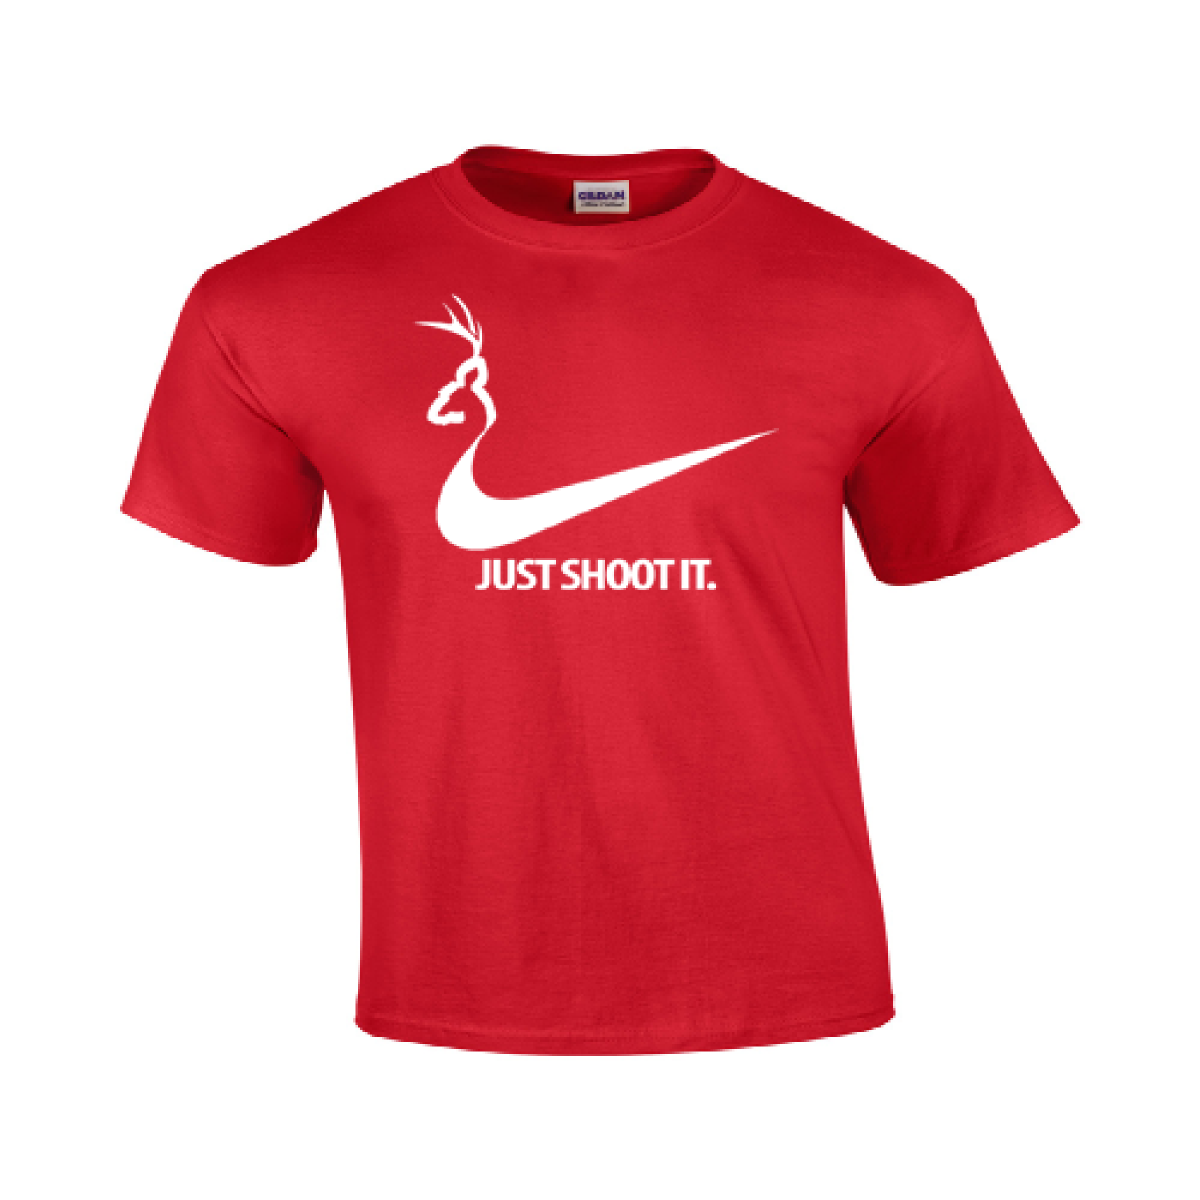 c141e53b Just Shoot It T Shirt Funny College Humor Hunting Nike Duck Logo Mens  Gildan 117 - $12.74 - $15.29